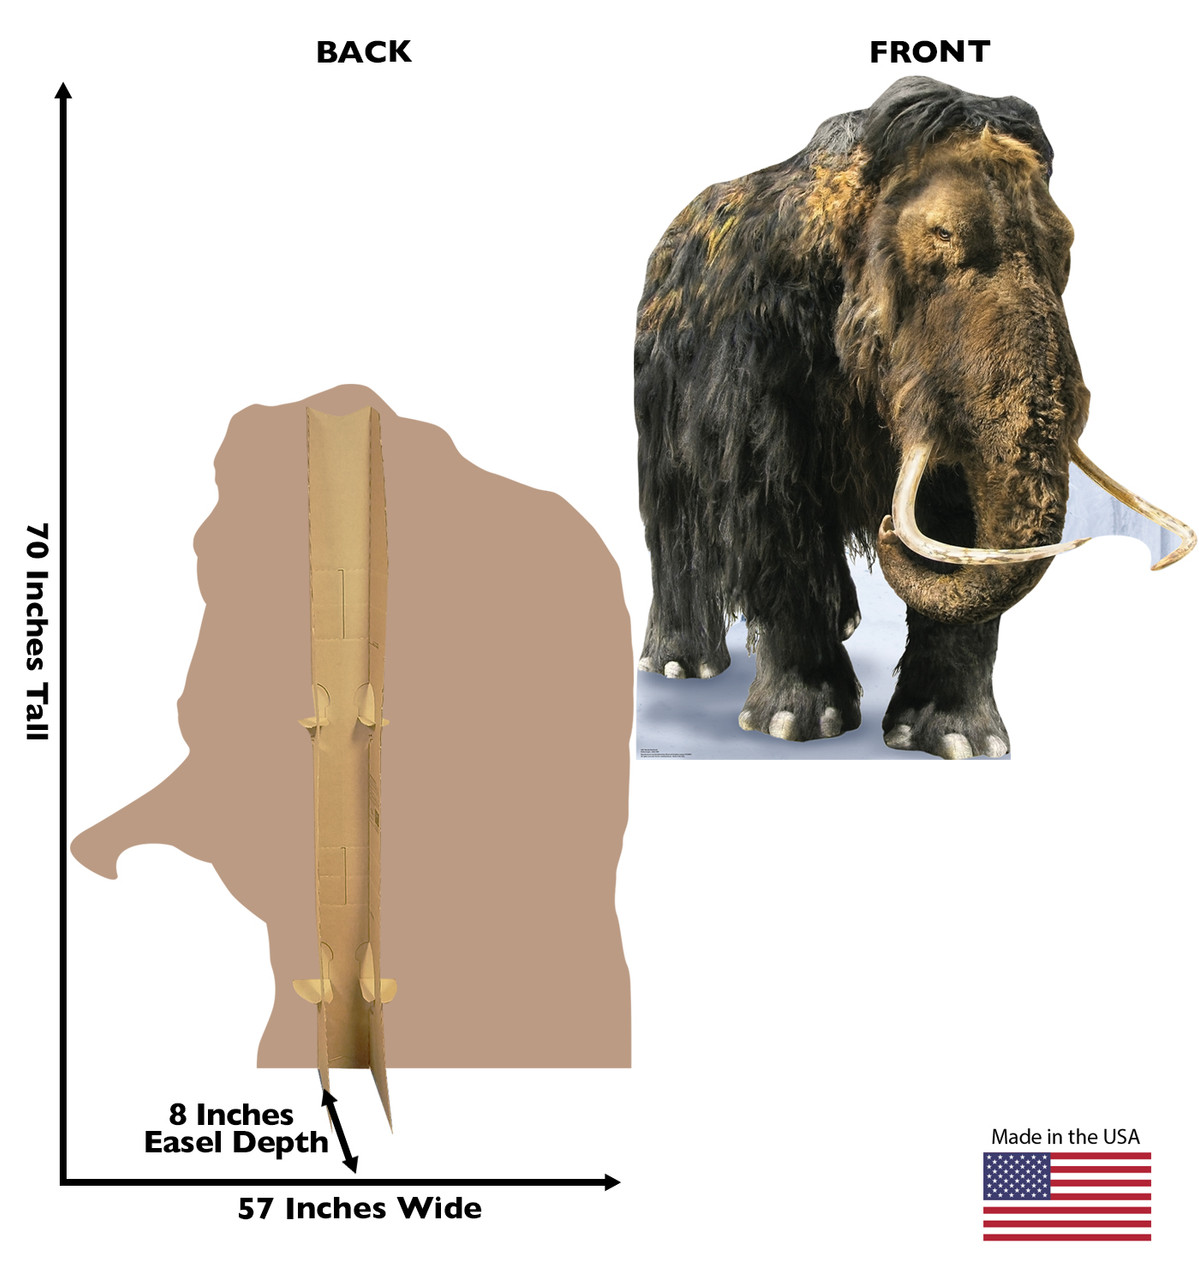 Life-size cardboard standee of the Woolly Mammoth with back and front dimensions.